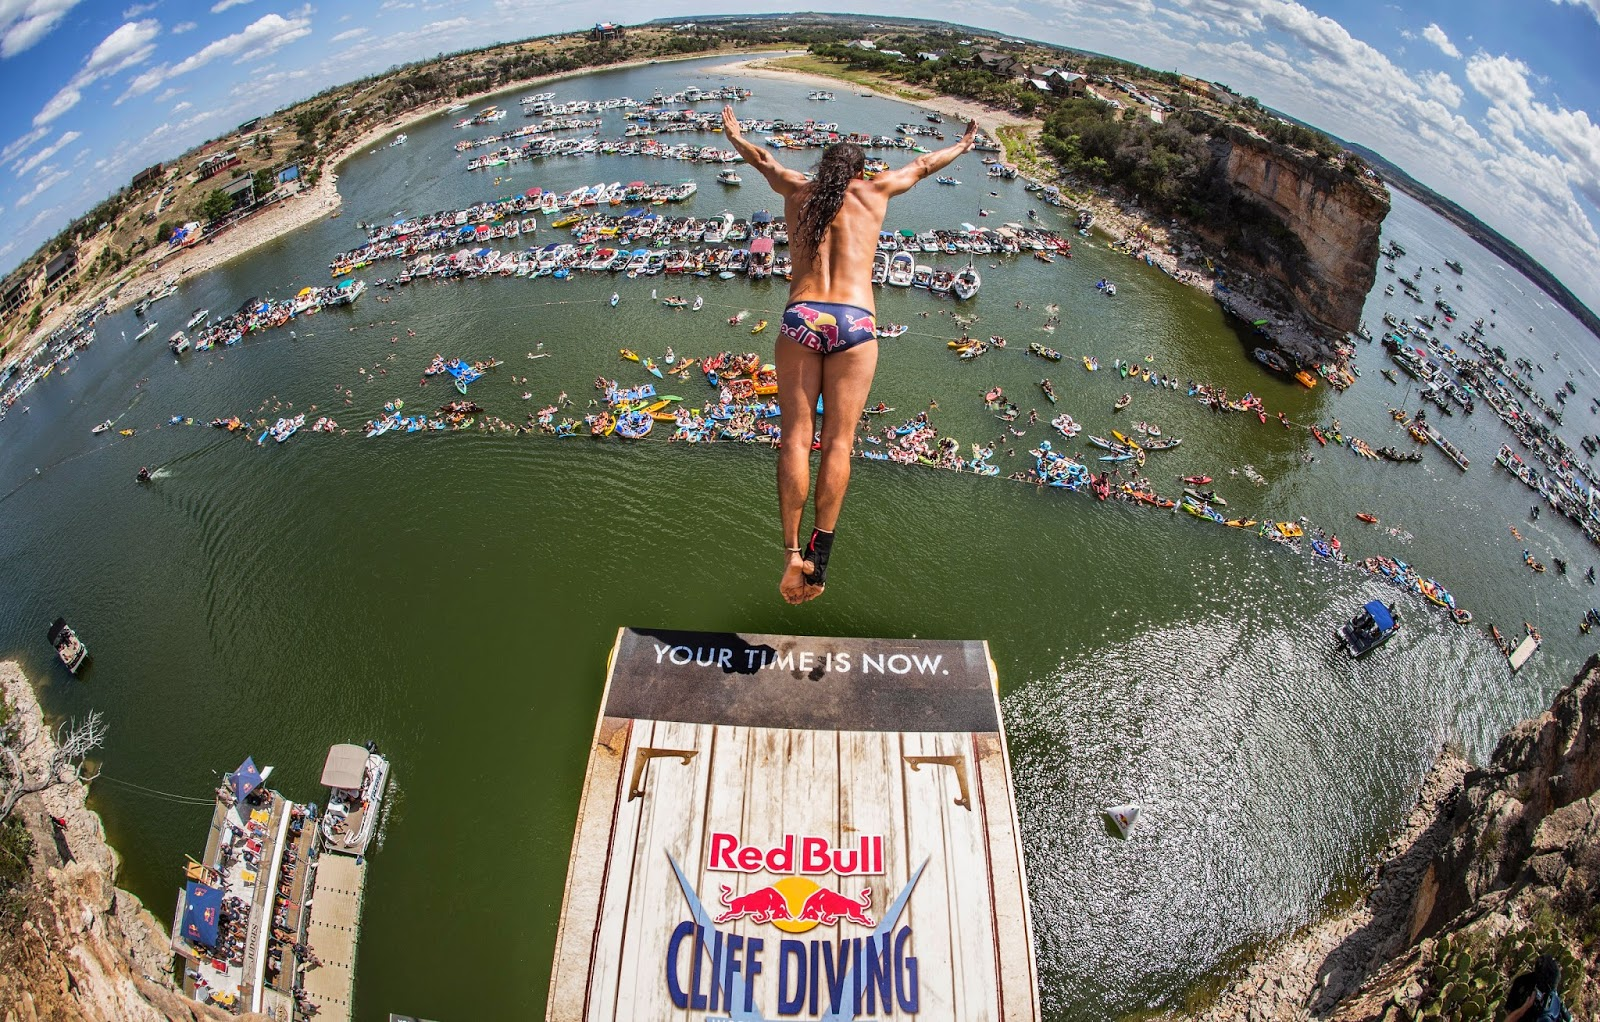 Red Bull Cliff Diving World Series at Hell's Gate at Possum Kingdom Lake in May 2015